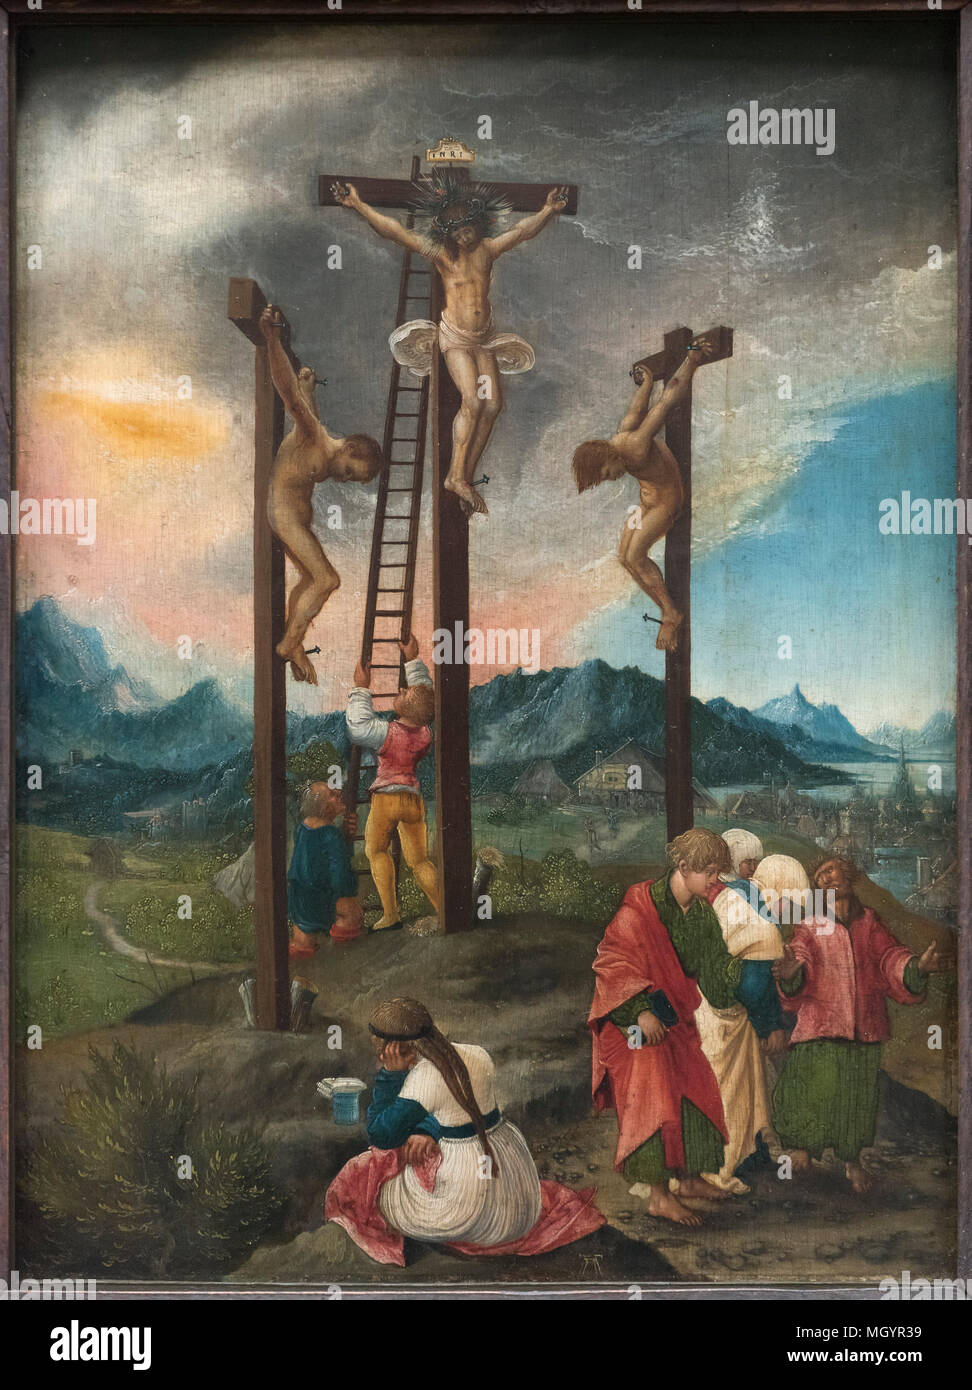 Albrecht Altdorfer (ca. 1480-1538), Crucifixion / Christ on the Cross Between the Two Thieves, ca 1526. Christus am Kreuz zwischen den Schächern. - Stock Image